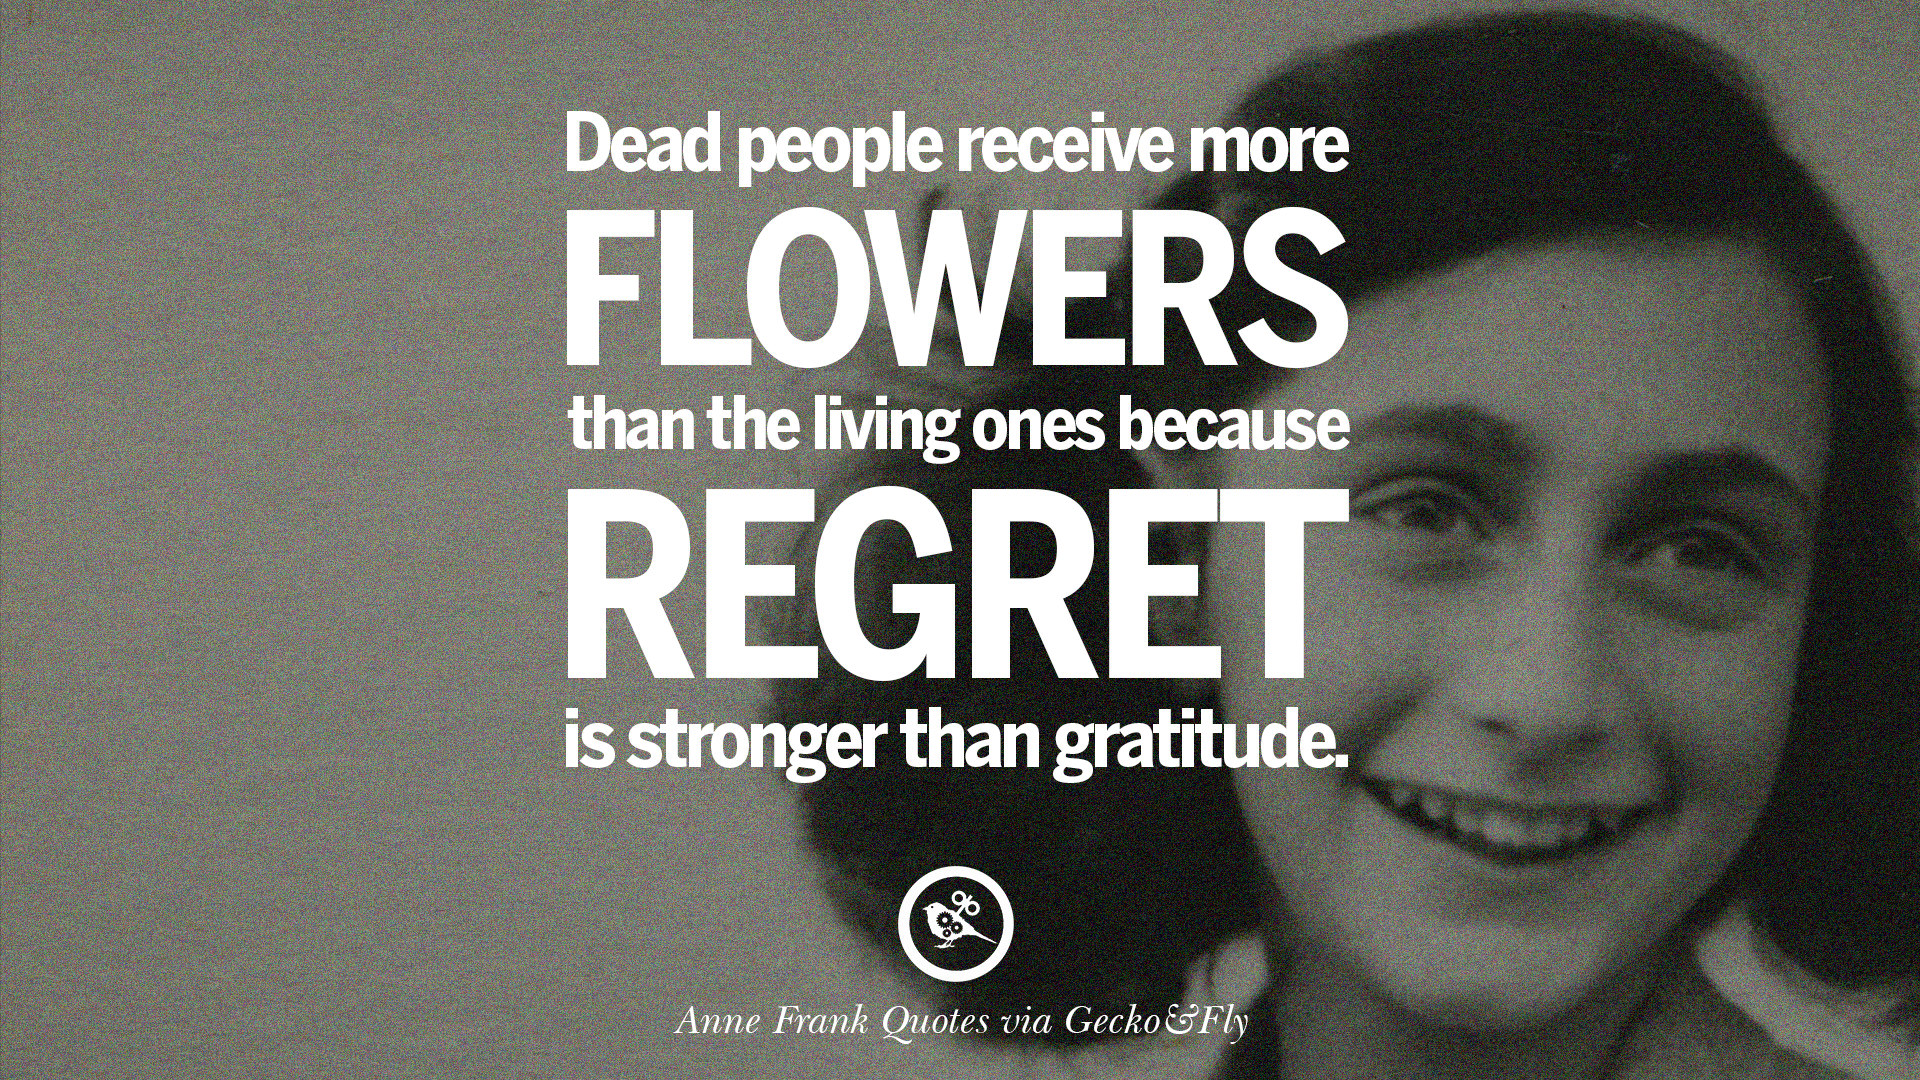 Anne Frank Quotes 12 Quotes By Anne Frank On Death, Love, And Humanities Anne Frank Quotes